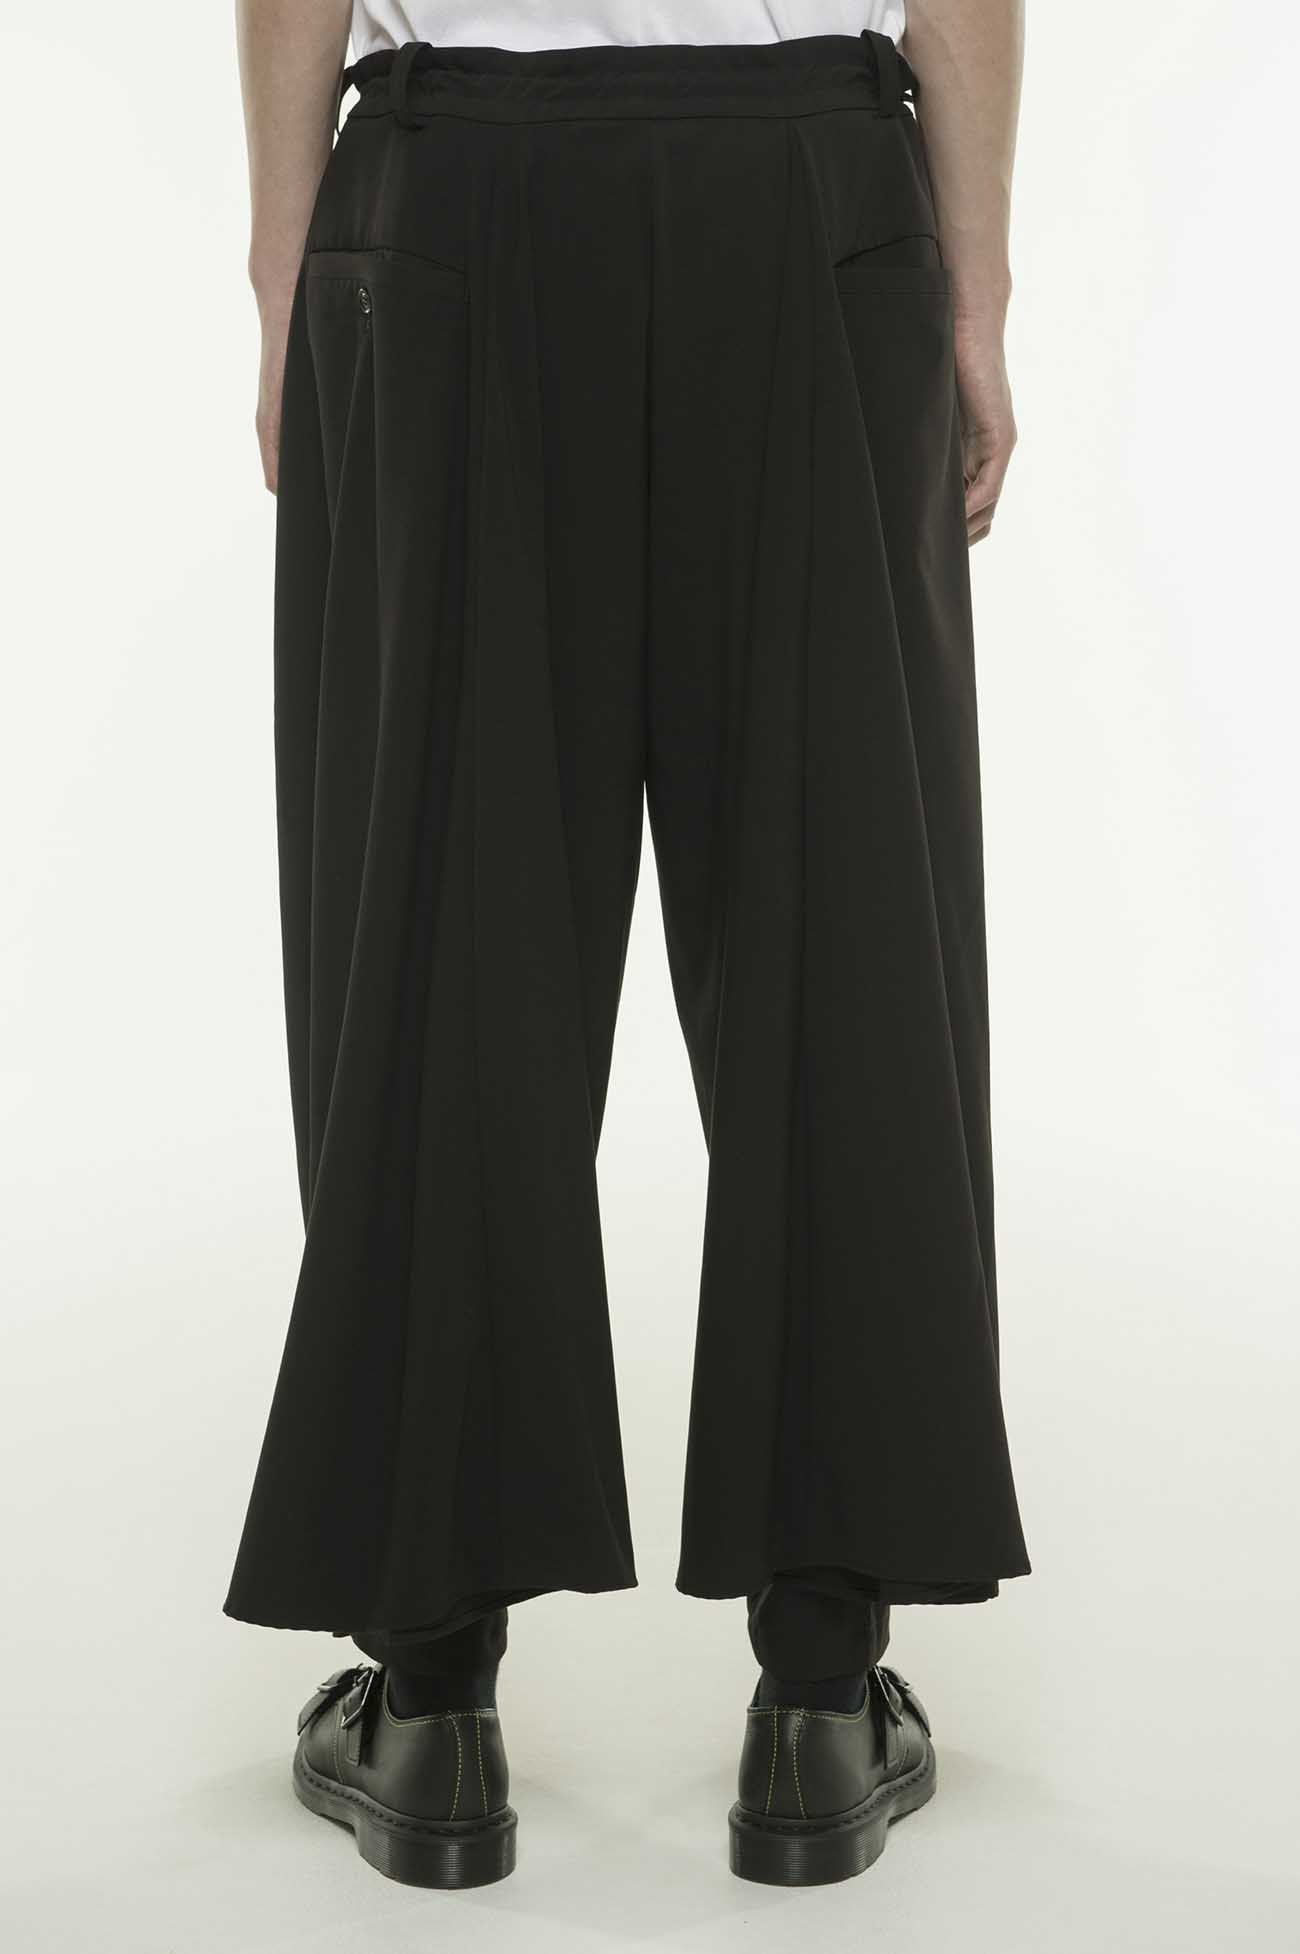 Pe/Rayon Gabardine Stretch Back flare Seam Crow Pants